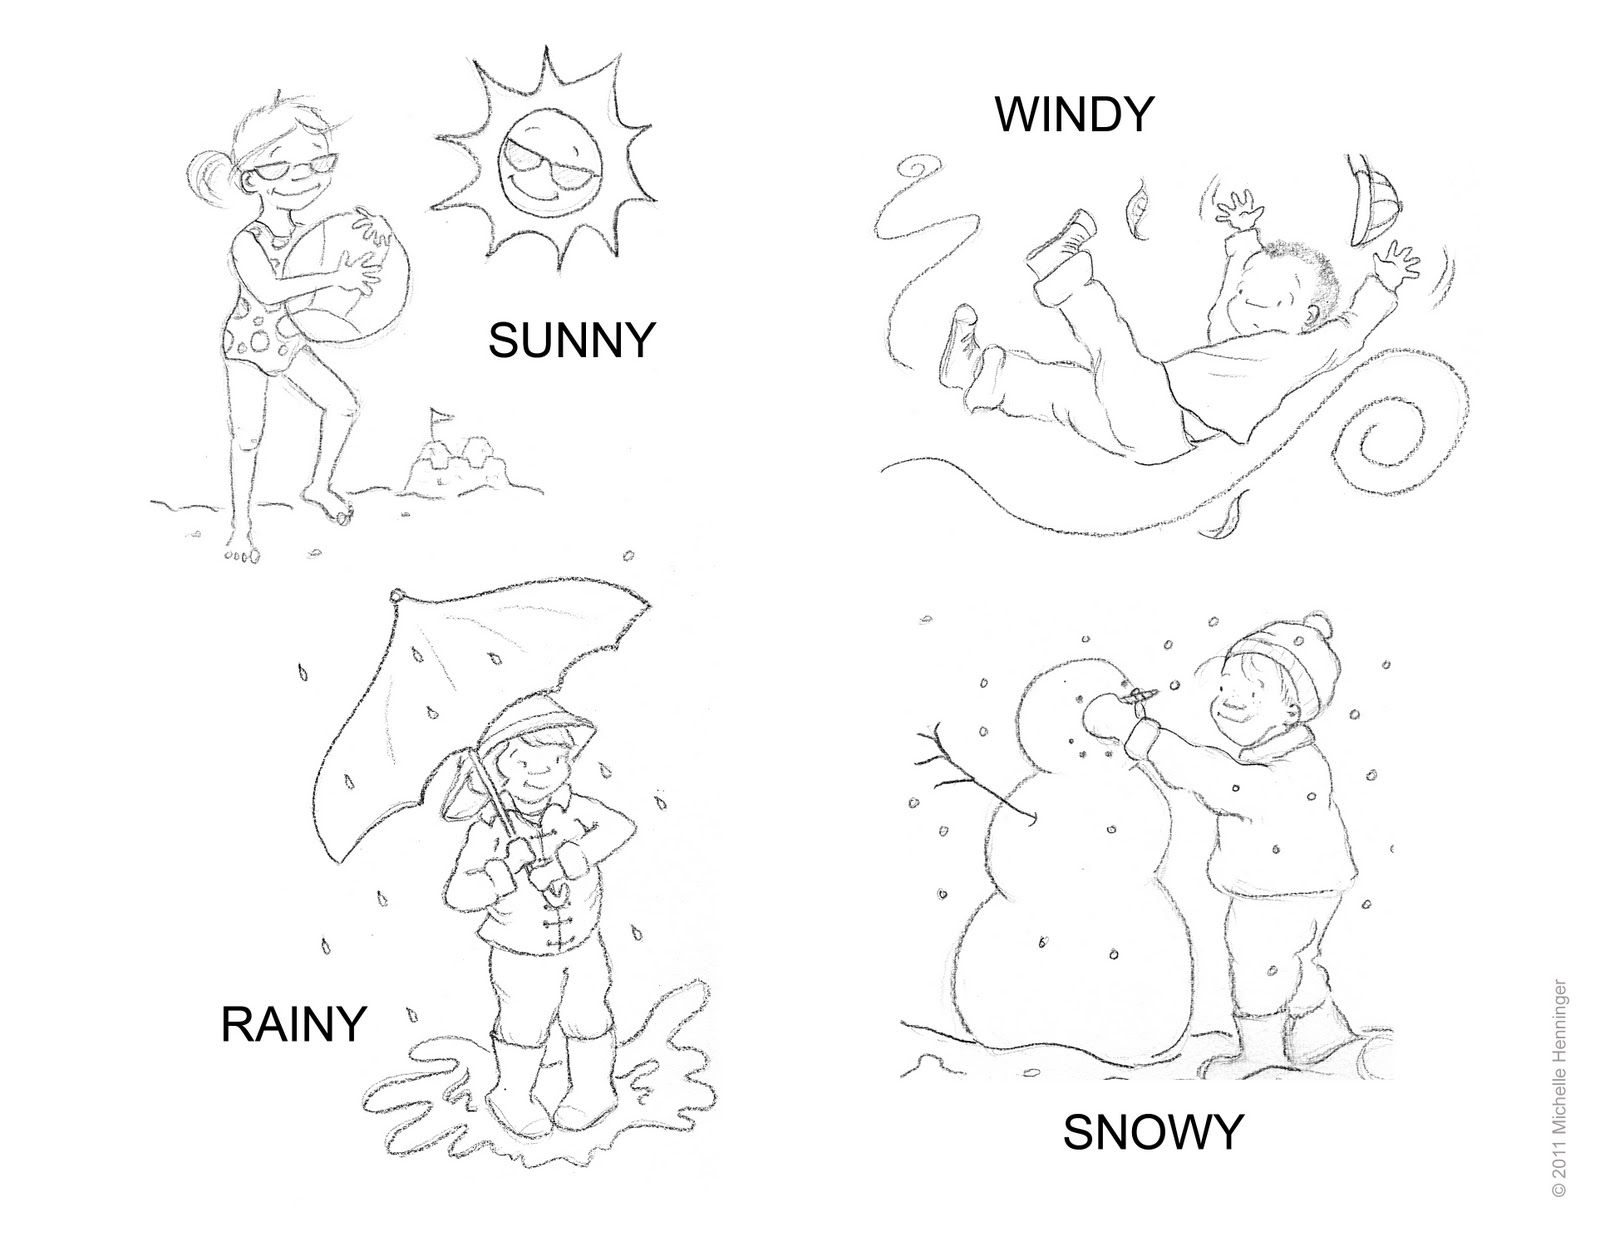 Weather Coloring Sheet Weather Coloring Pages Coloring Pages Inspirational Coloring Pages